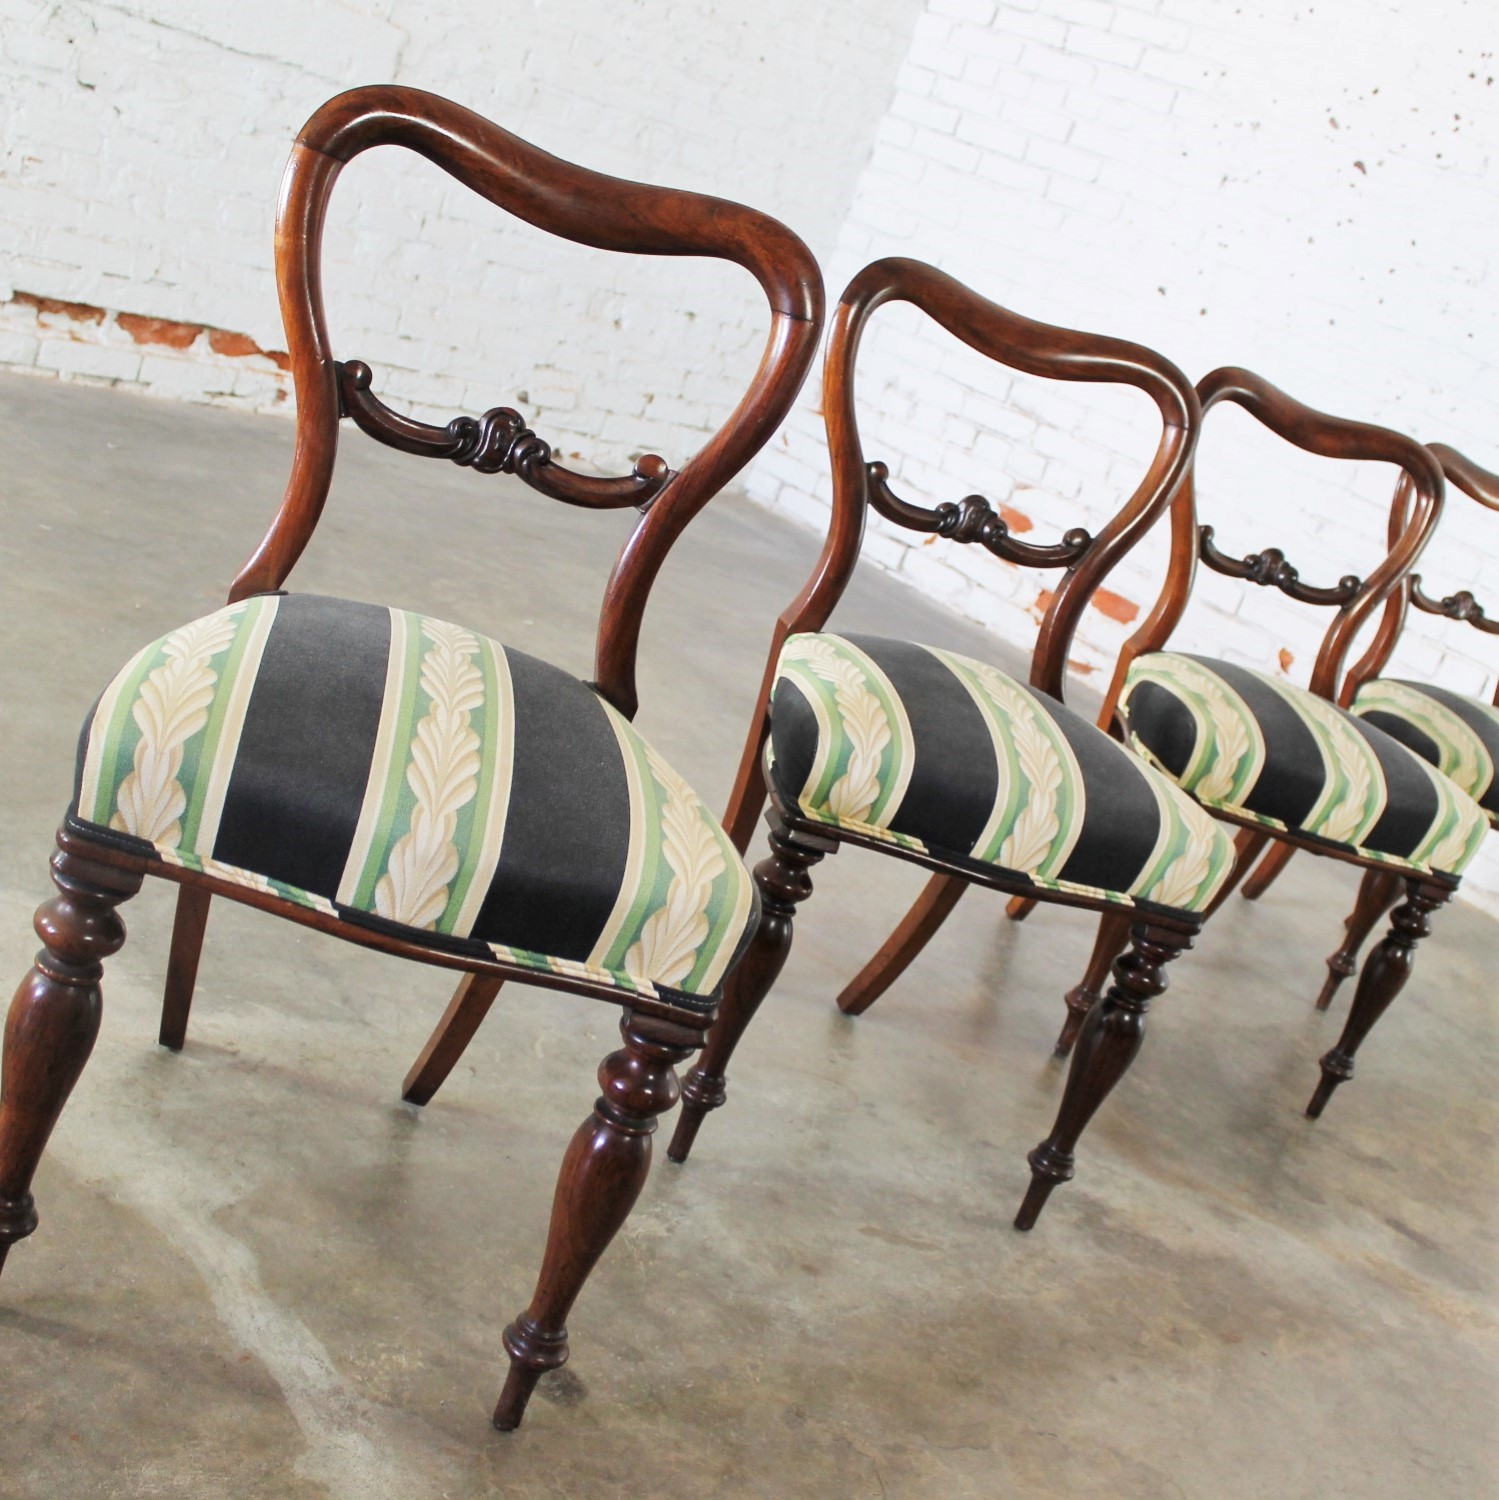 Set of 4 Antique Victorian Dining Chairs in the manner of Gillows - Set Of 4 Antique Victorian Rosewood Dining Chairs In The Manner Of